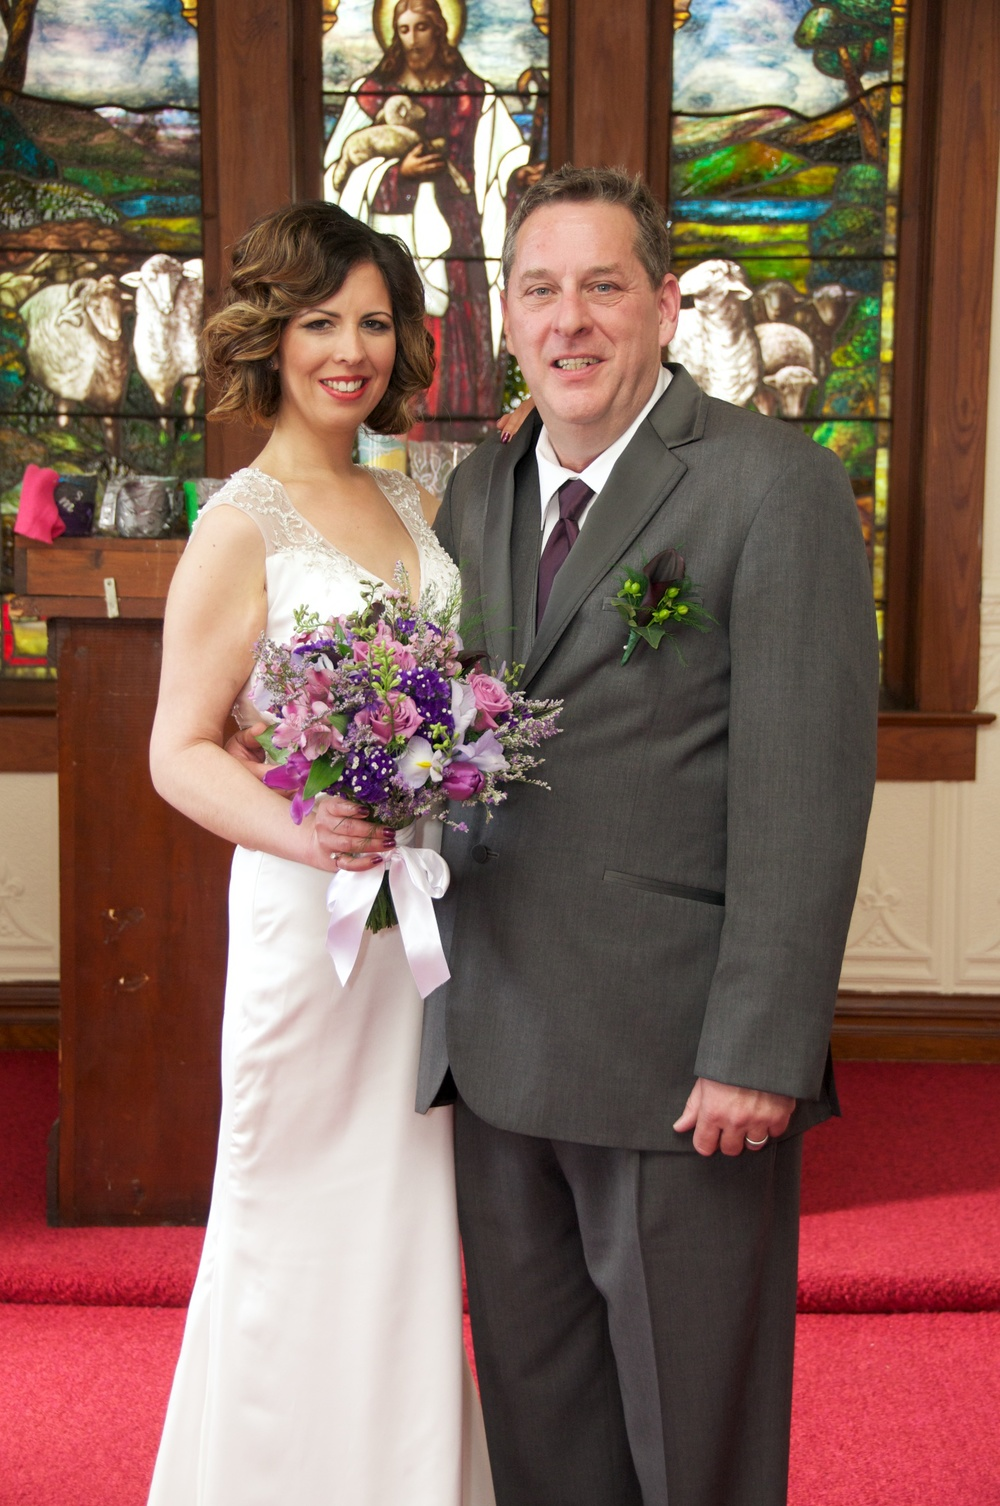 Callison Wedding  111.jpg